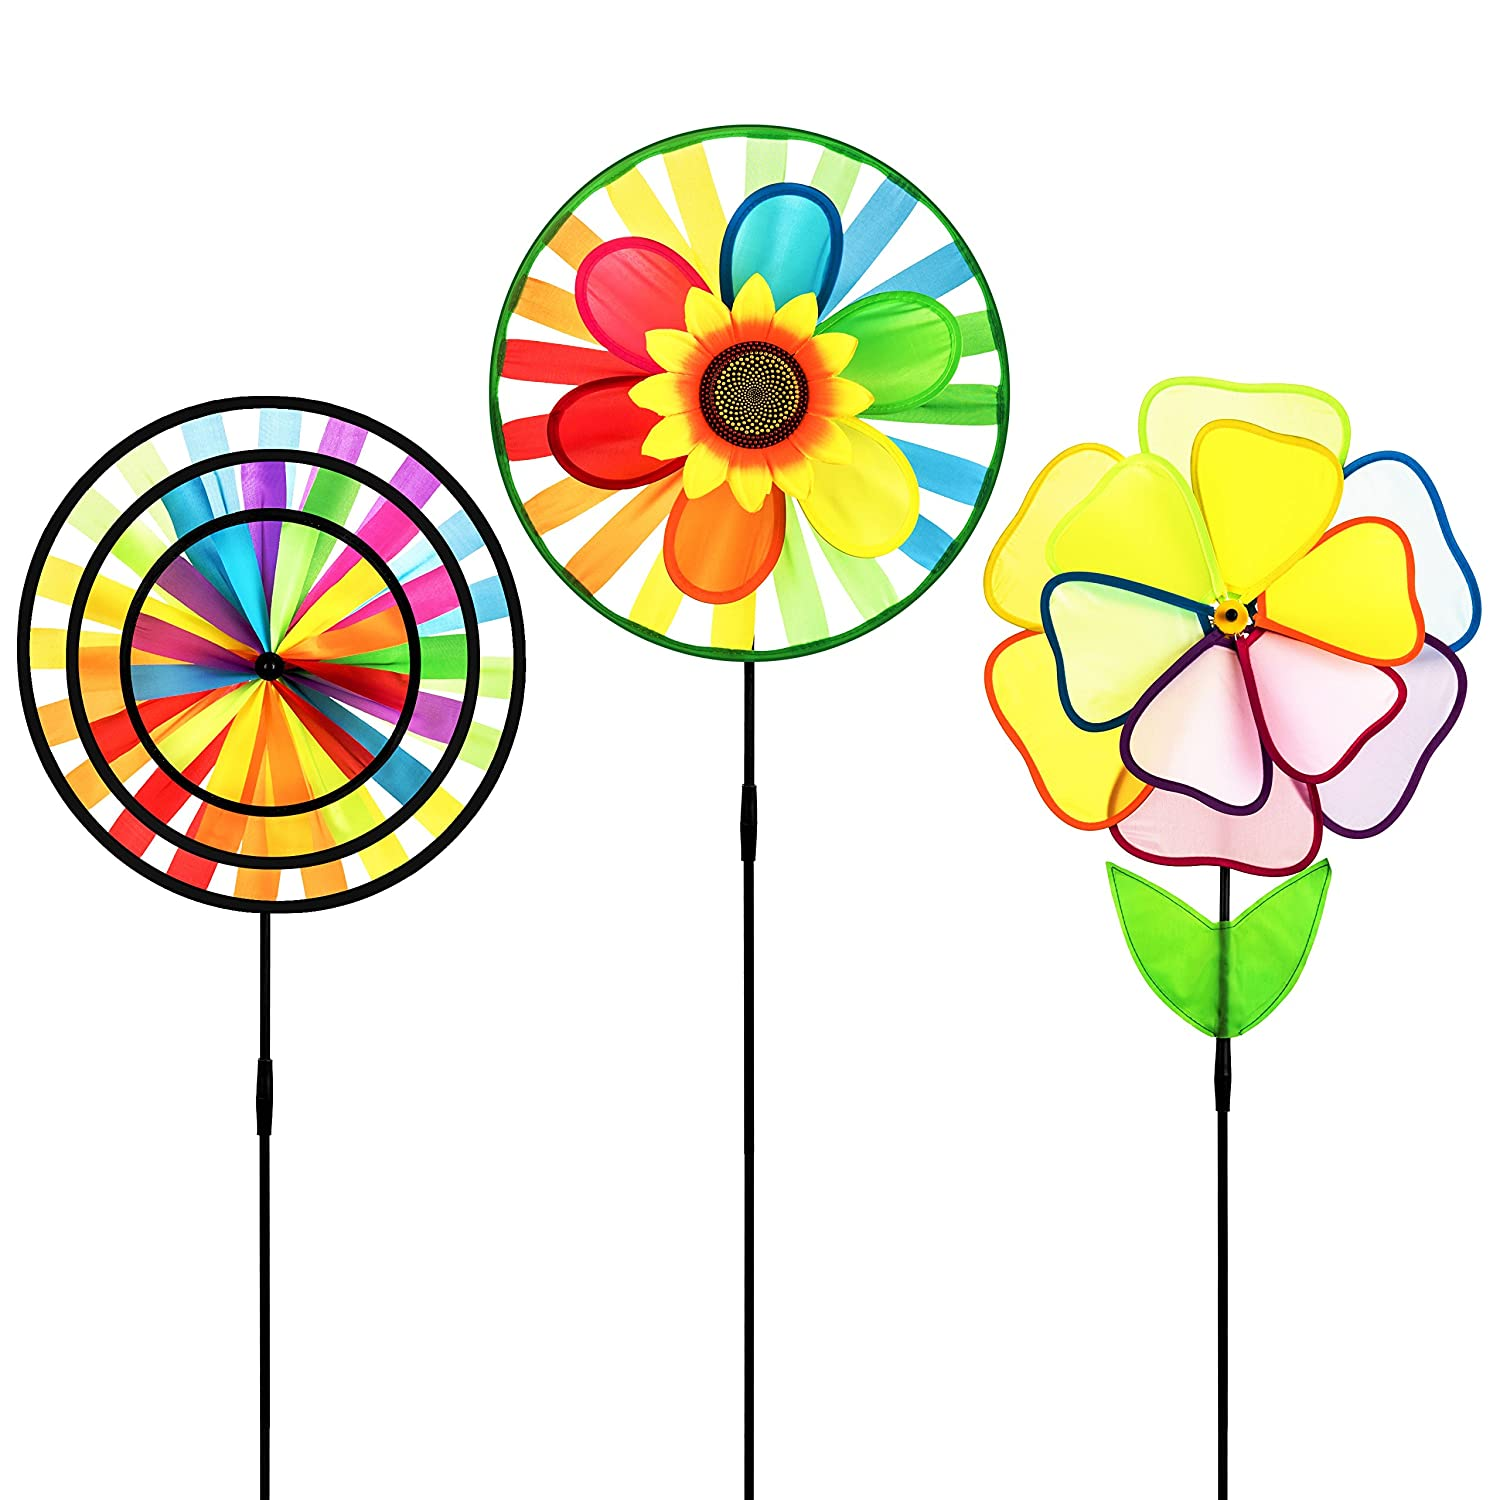 Pinwheel 3 Pack Made of Durable 100% Weatherproof Nylon and Fibreglass UV Resistant Won't Stain Rainbow Coloured spinner for Gardens dance in the slightest of breezes. B0725MG4B7 13049